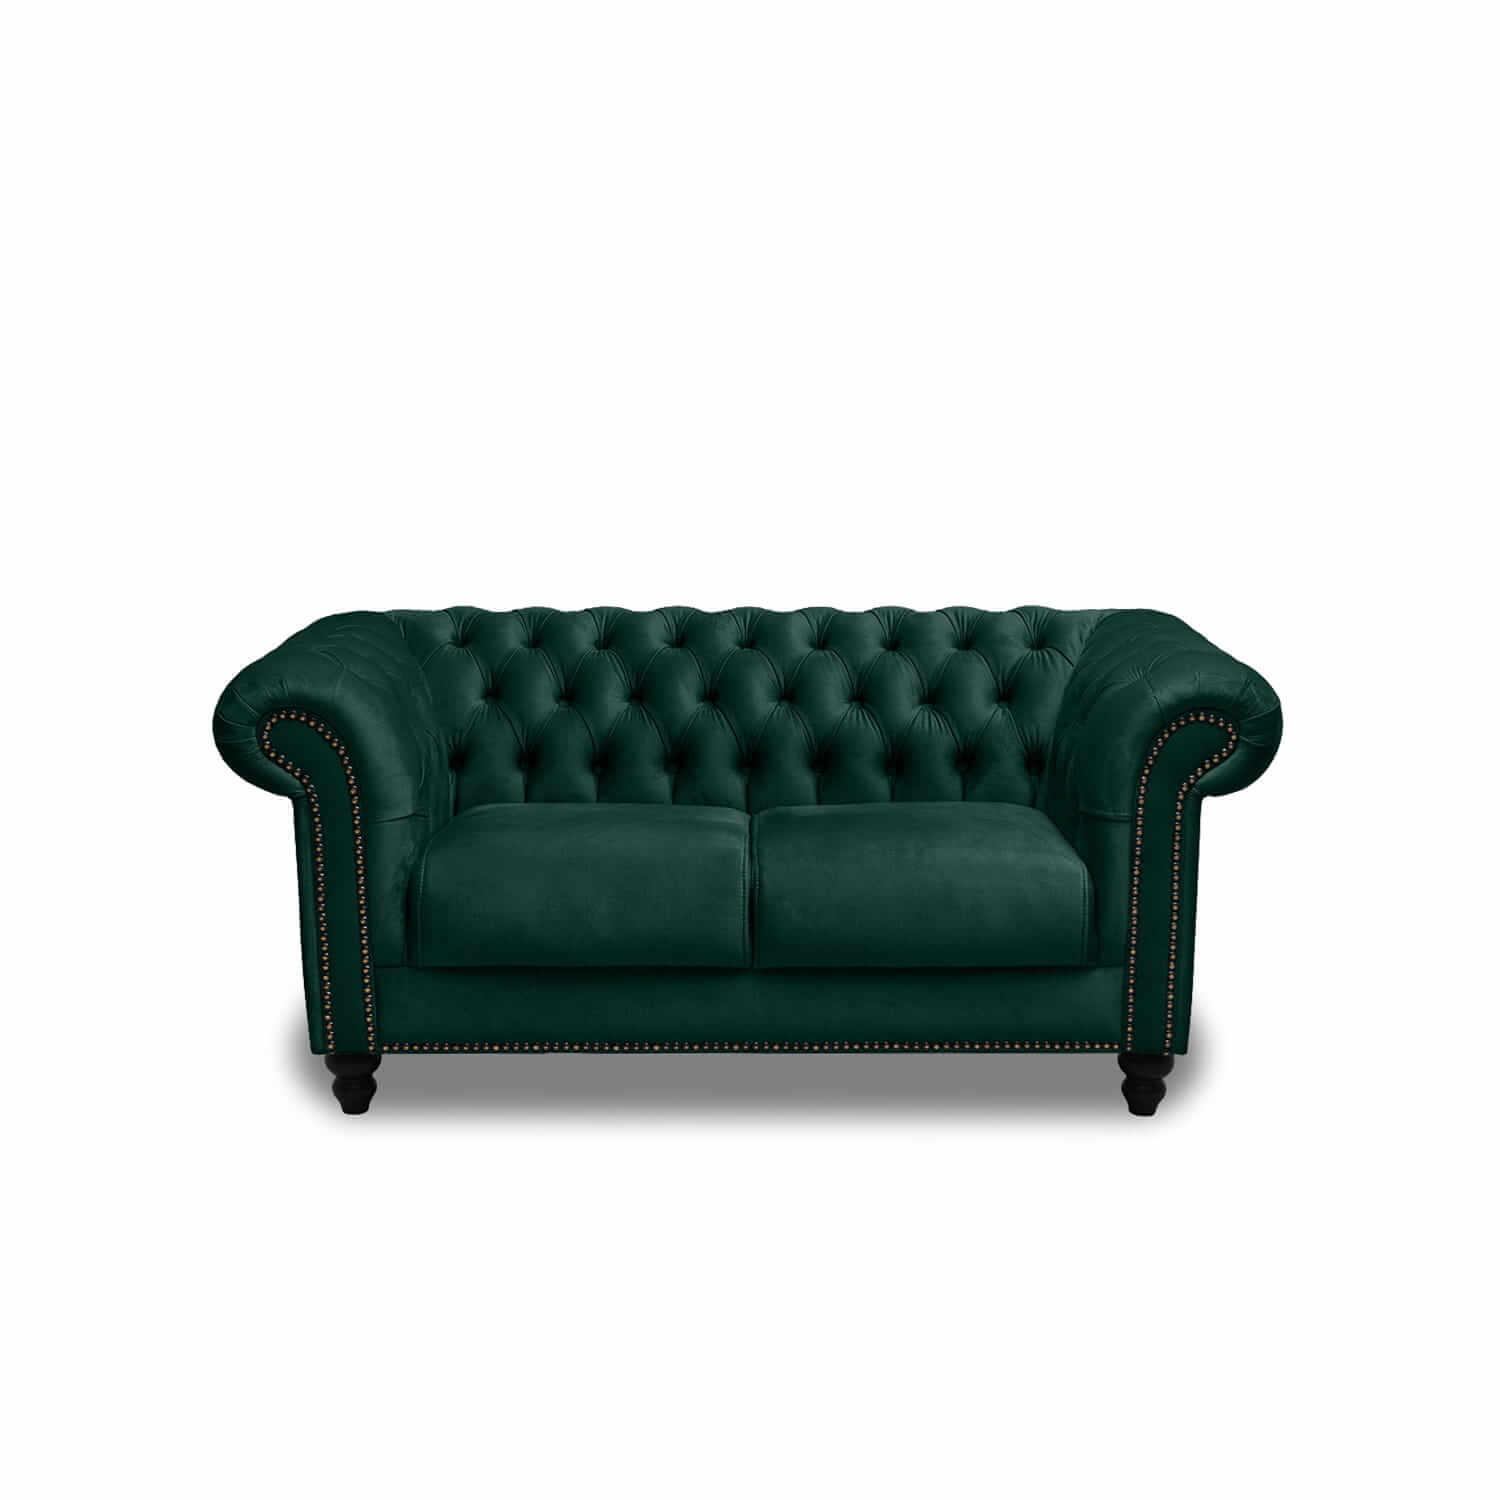 https://www.excluzive.se/wp-content/uploads/2020/10/Chesterfield-2-sits-Gron.jpg